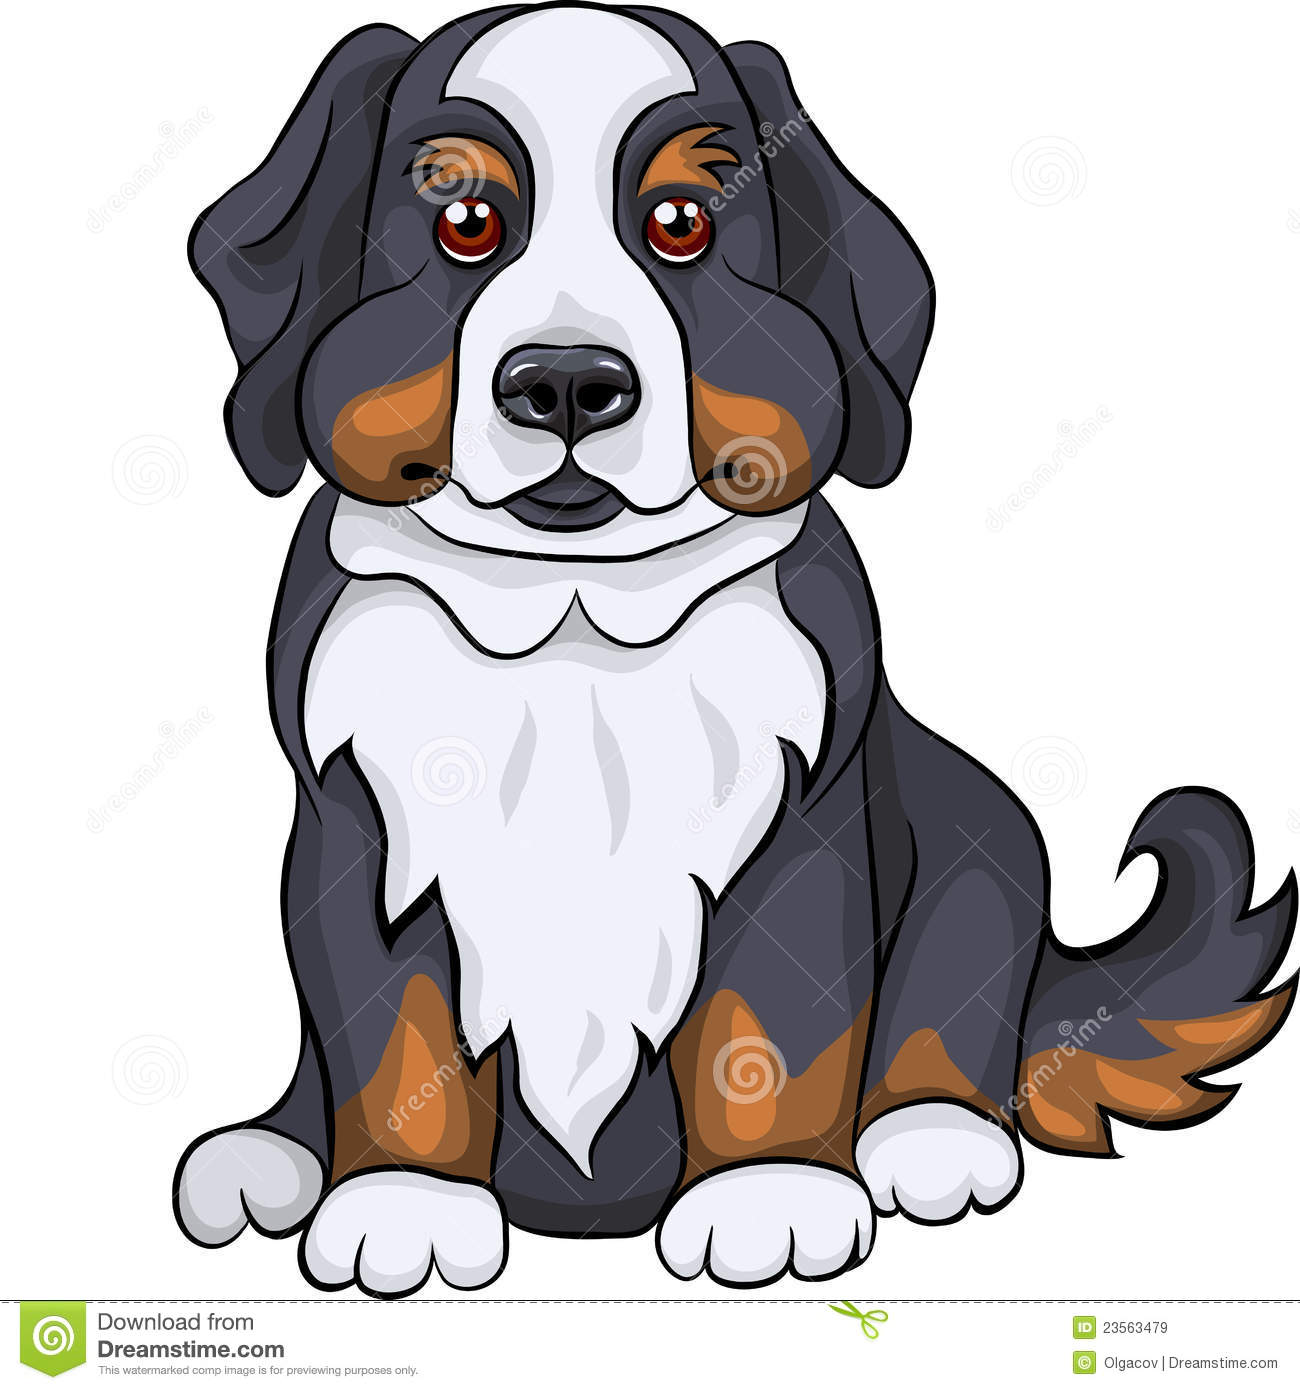 Royalty Free Stock Images Vector Cute Bernese Mountain Dog Puppy Smiles Image23563479 besides Stock Images Cat Dog Image24904094 together with Paw Prints Clipart together with  likewise Last measurements 3. on dog drawings to print